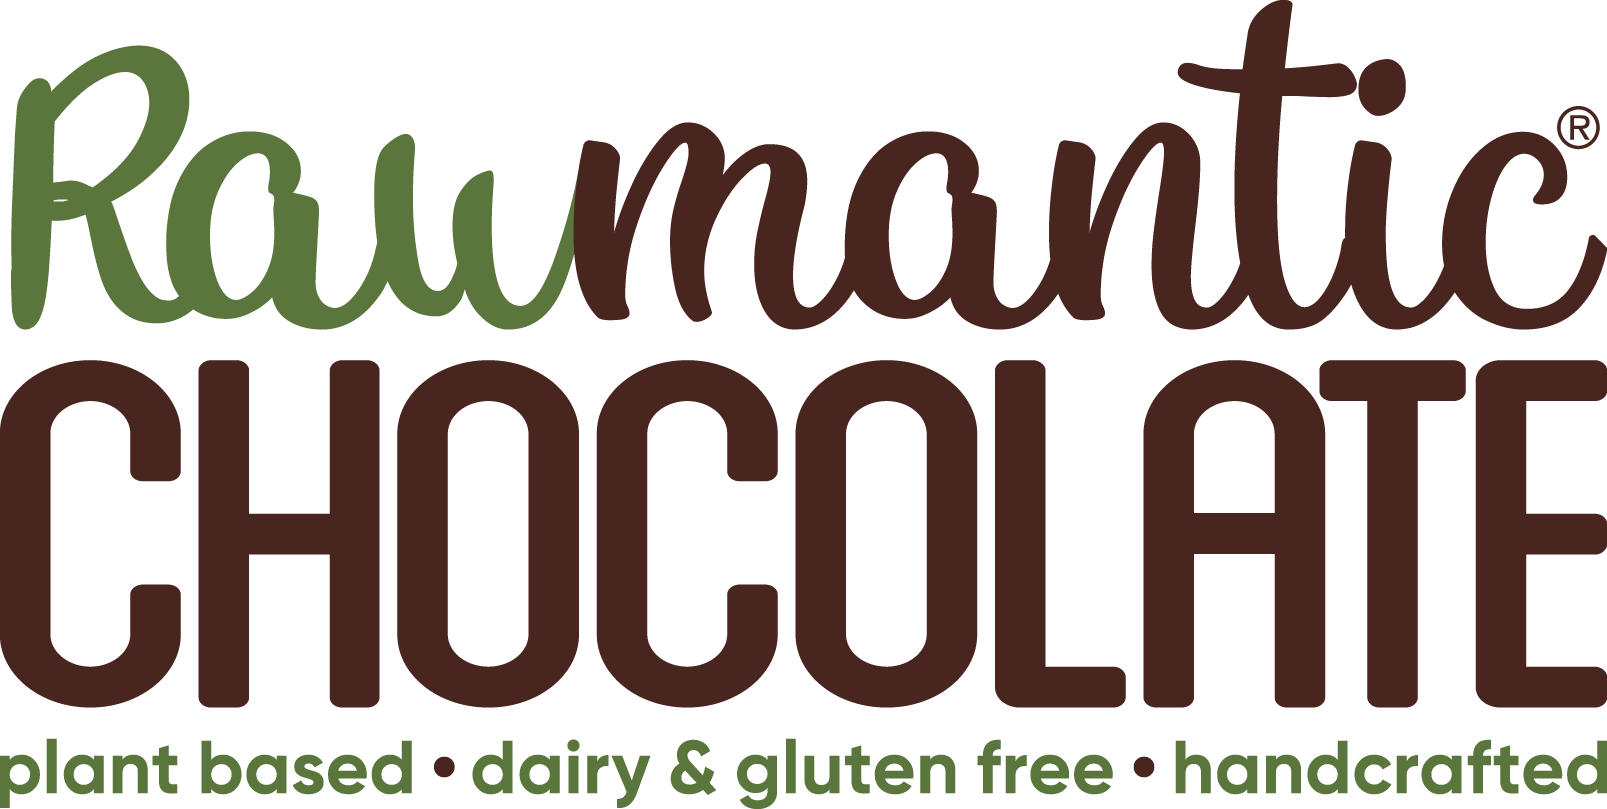 Rawmantic Chocolate